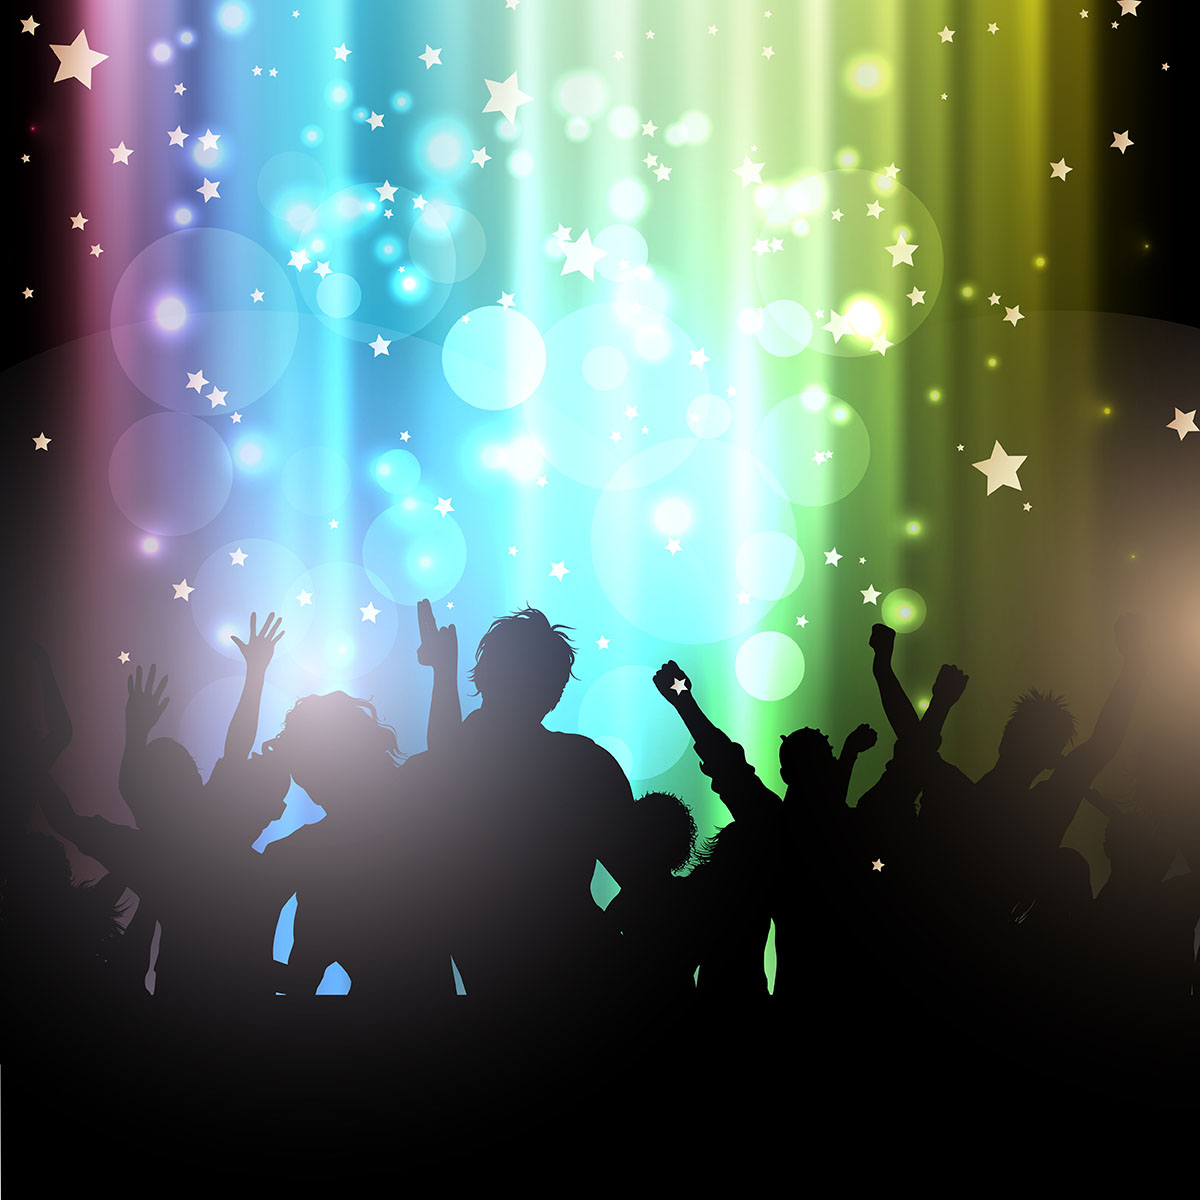 Party People On Bokeh Lights Background Download Free